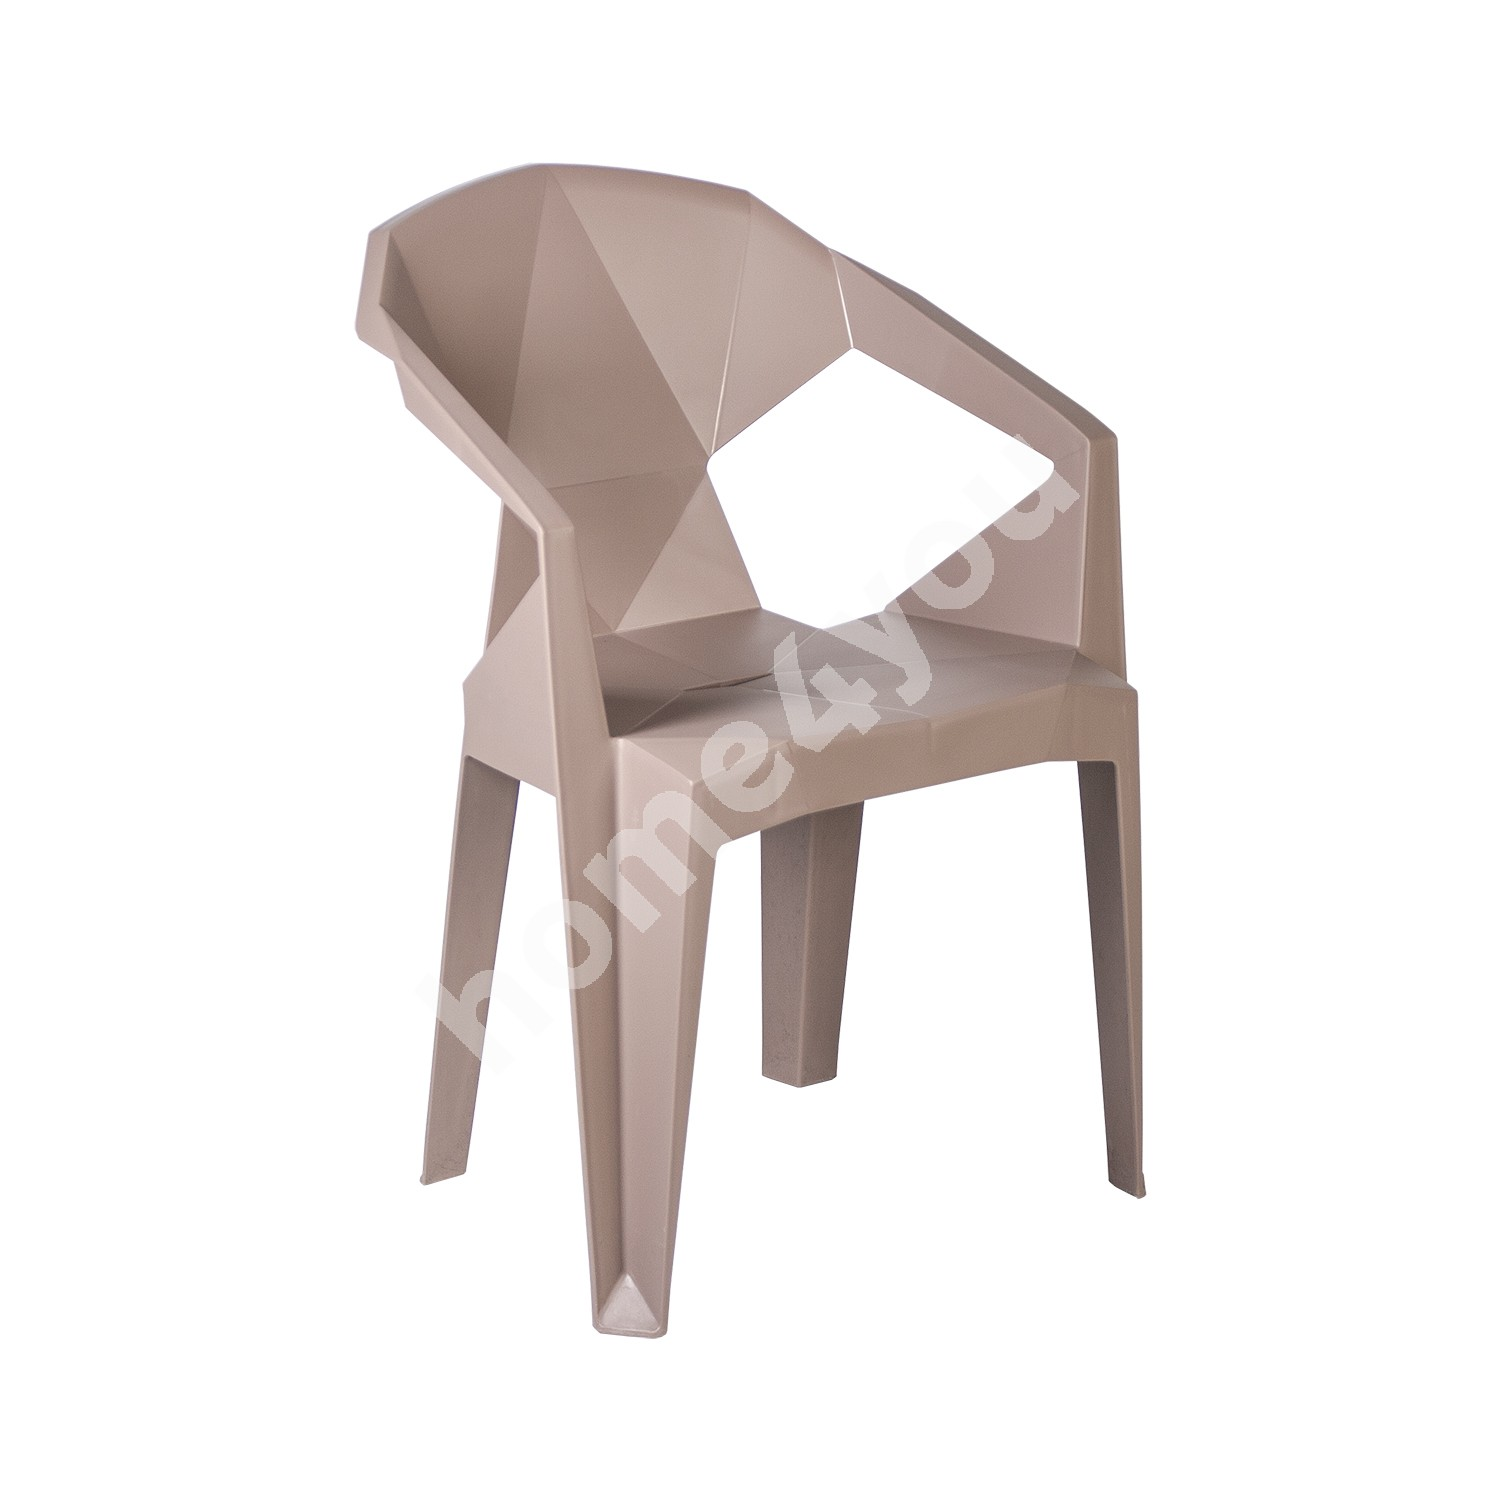 Chair MUZE 56x50,6xH80cm, material: plastic, color: taupe